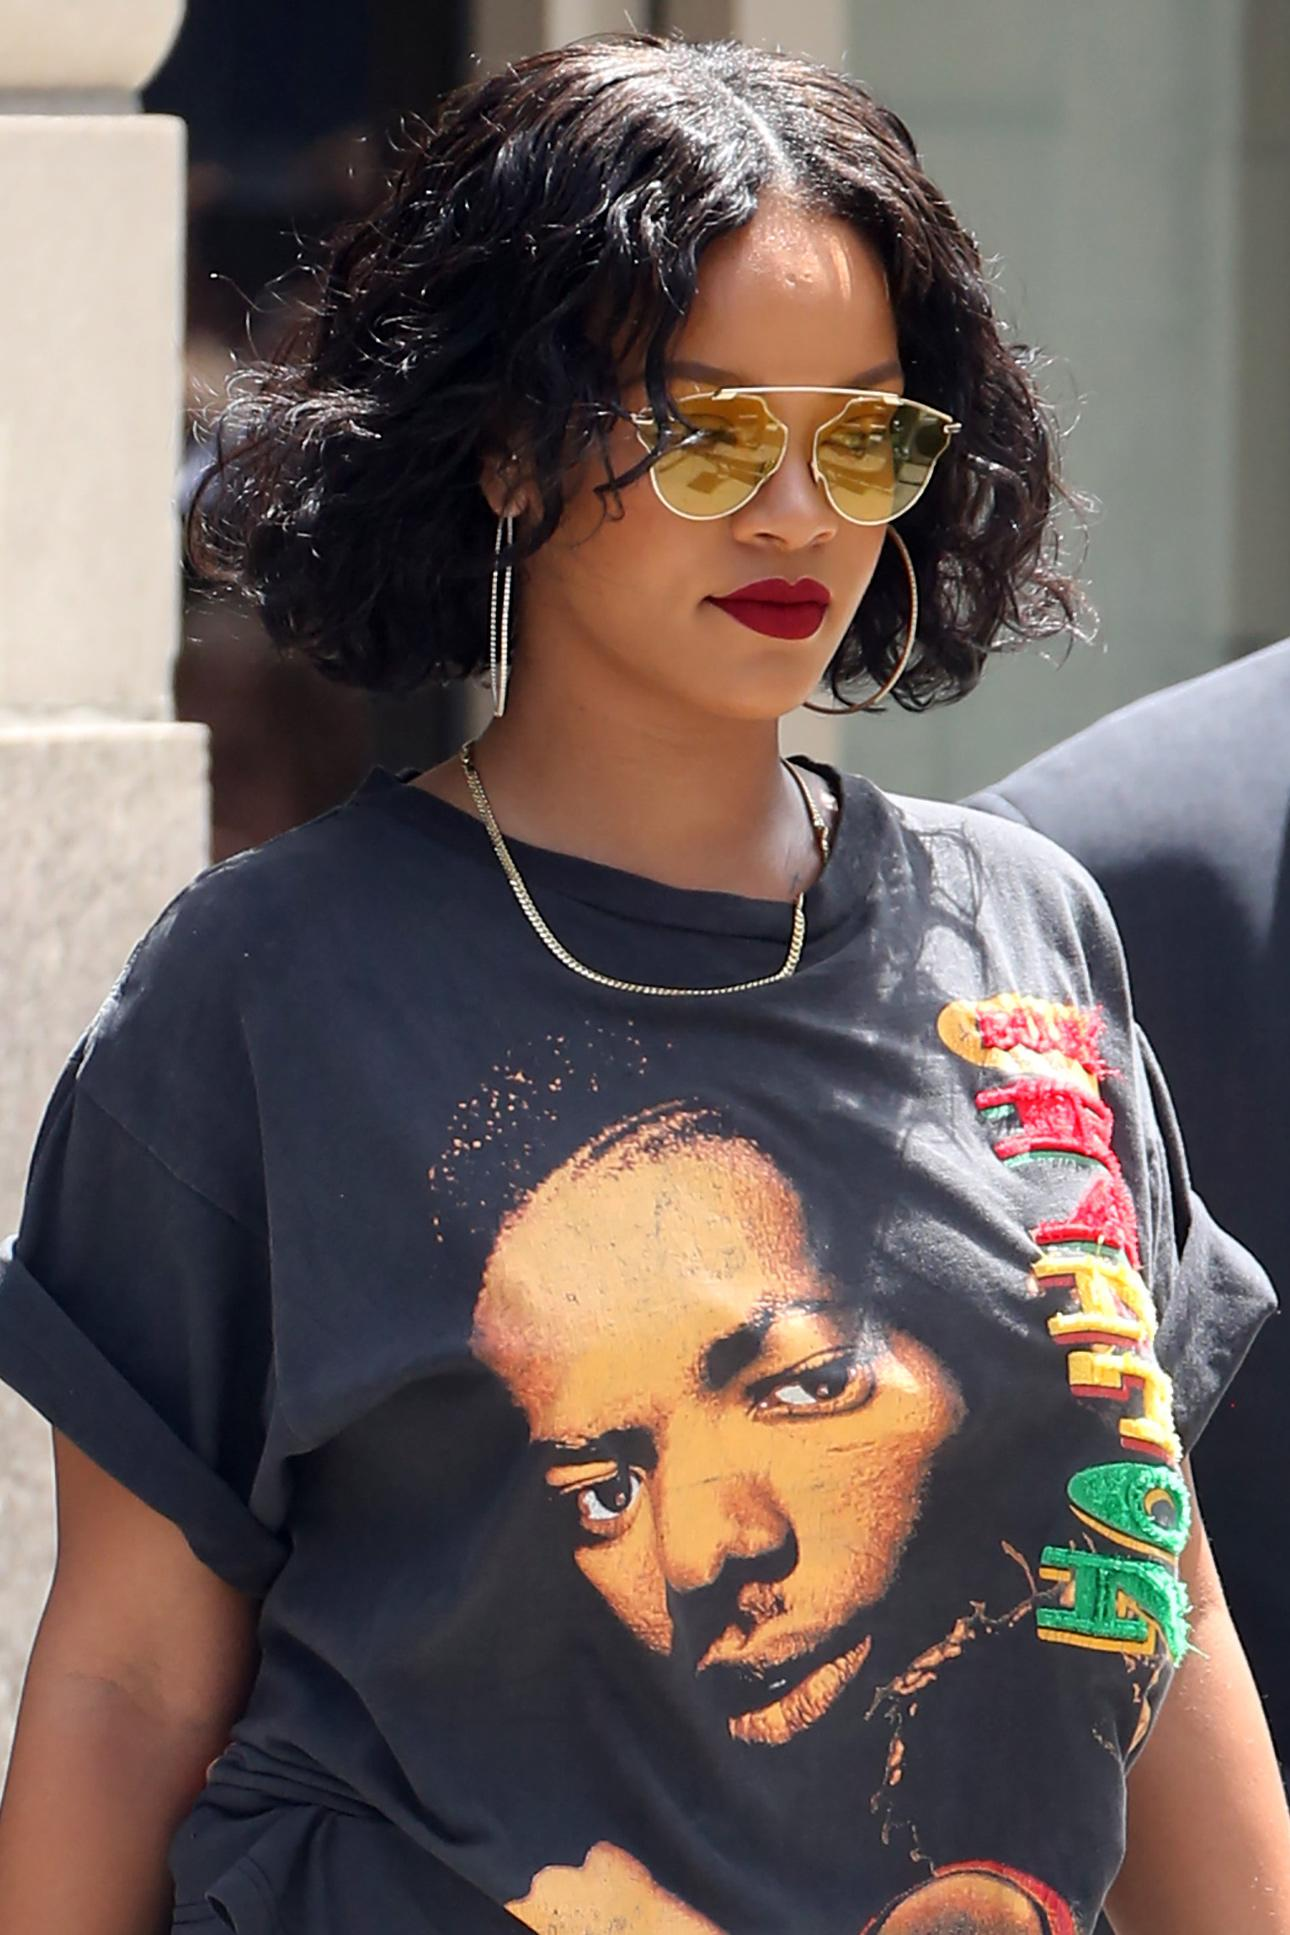 c8cd39b5505d You Can Finally Purchase Those Dior Sunglasses All Your Favorite Celebs Love